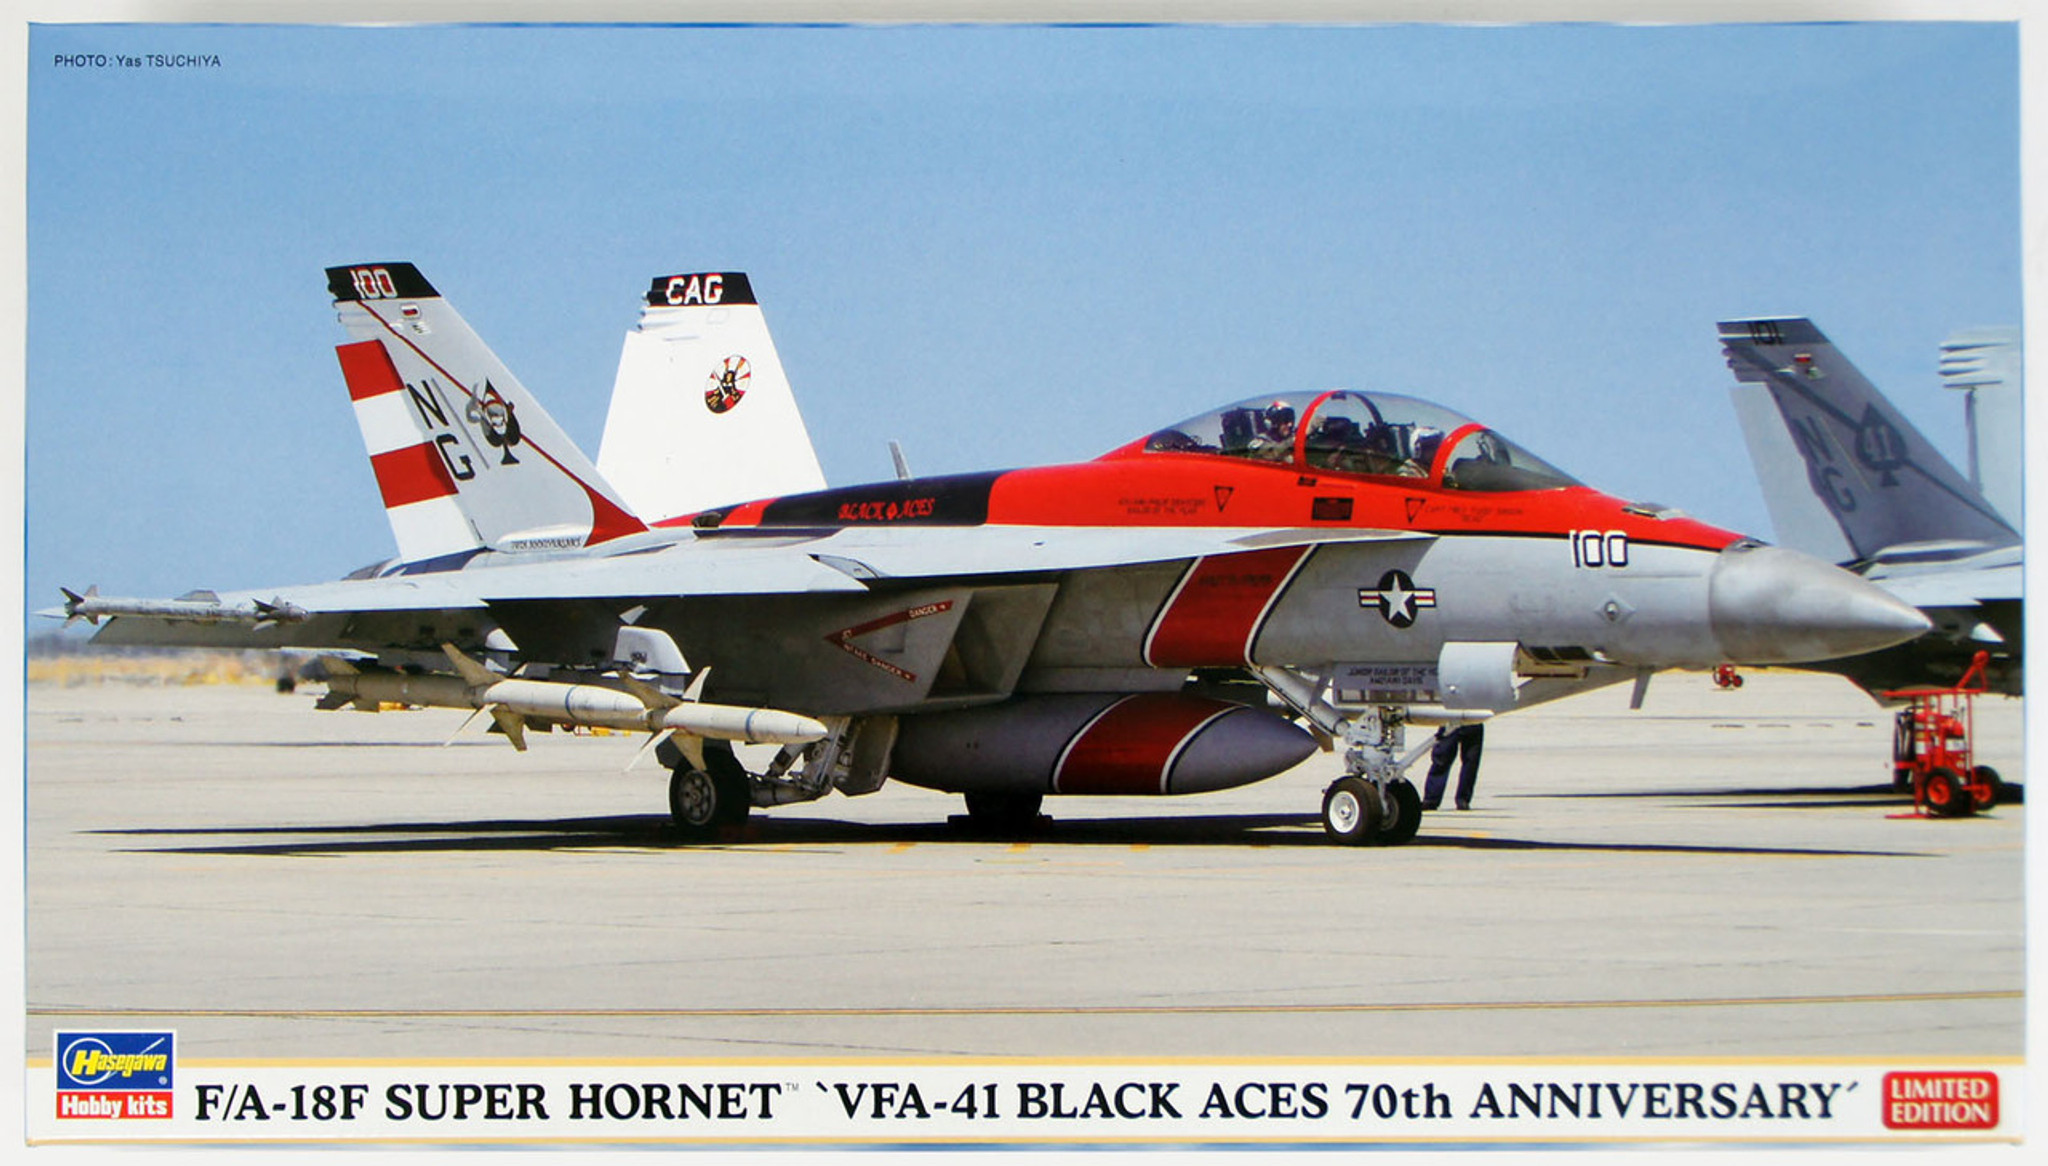 Hasegawa 02184 F/A-18F Super Hornet VFA-41 Black Aces 70th Anniversary 1/72  Scale Kit